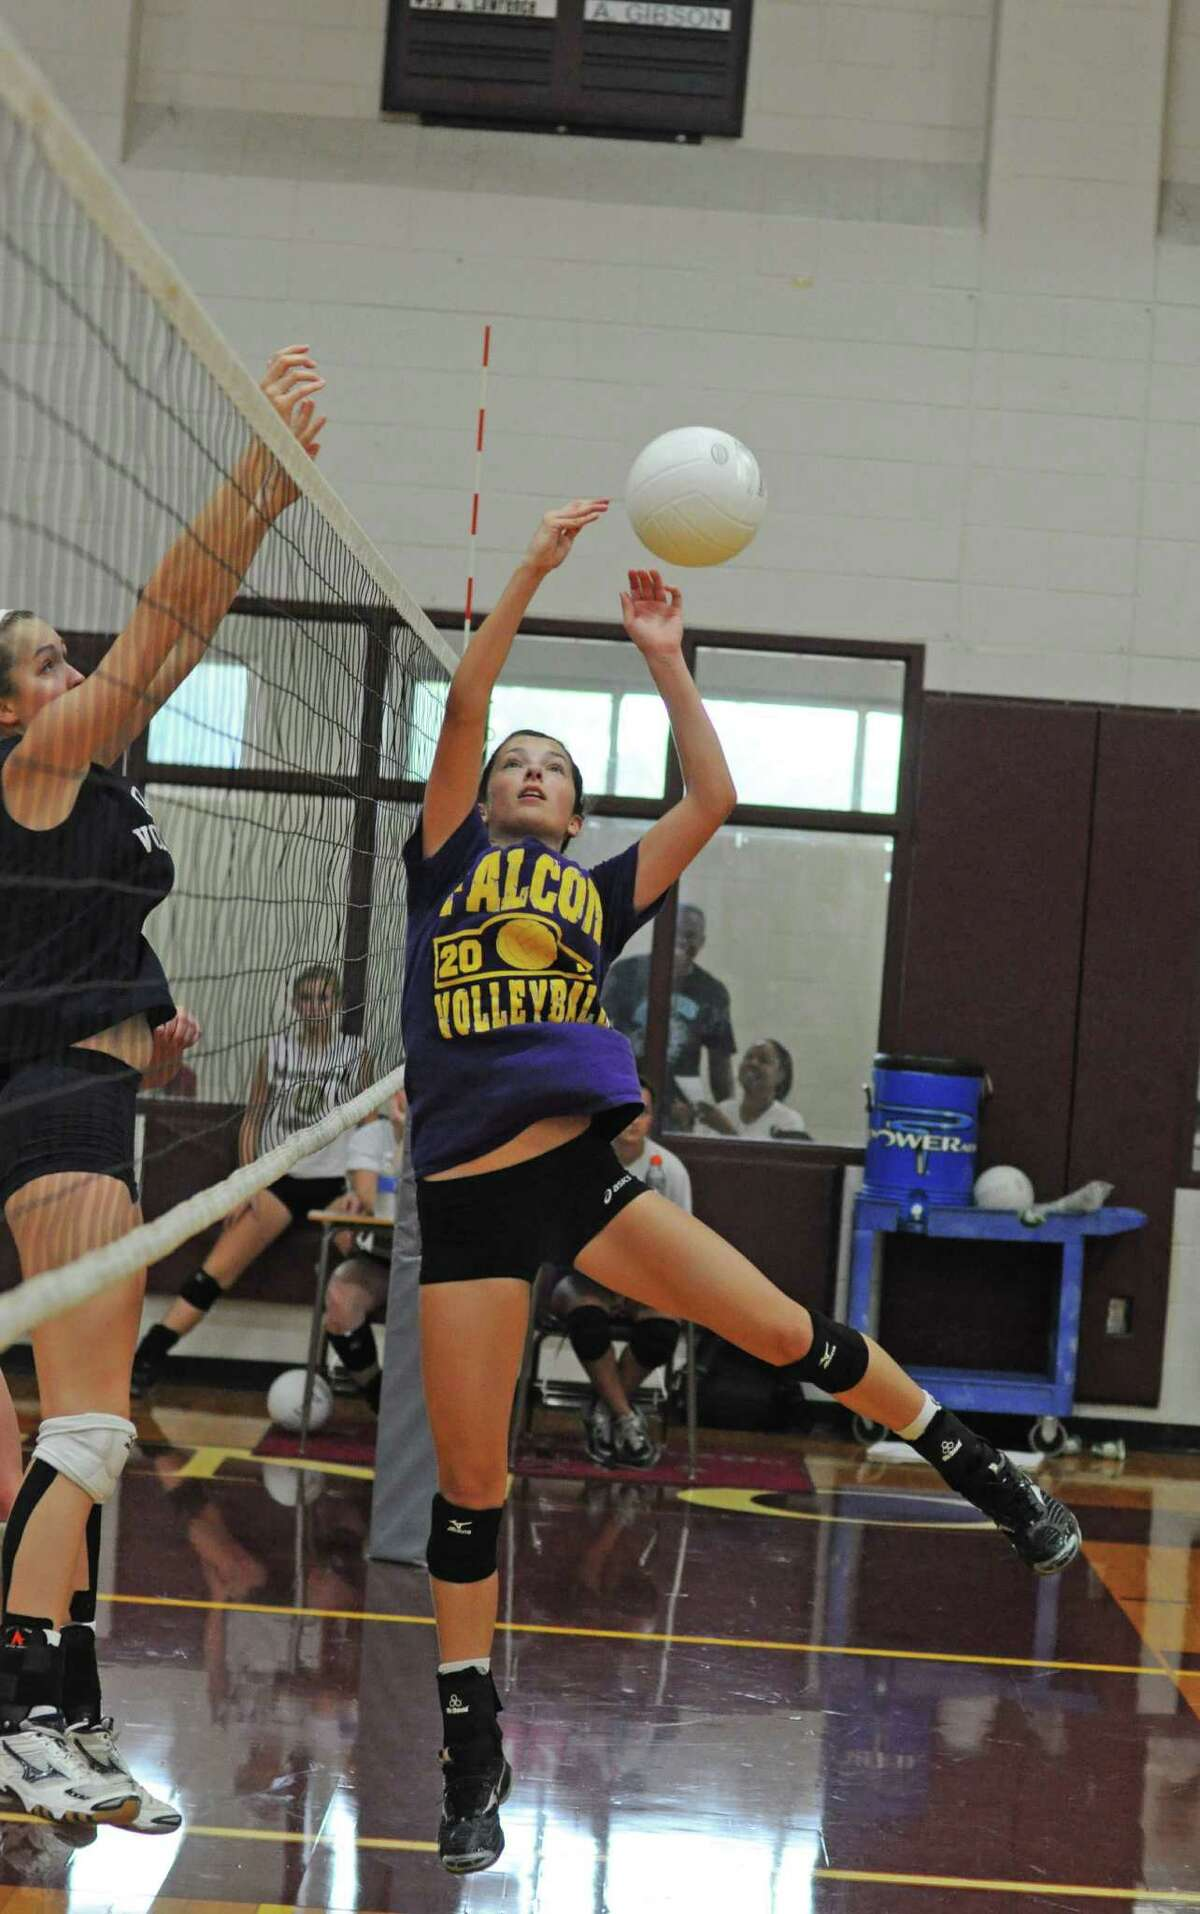 Jersey Village volleyball junior setter Lauren Greenspoon during a scrimmage on 8-11-12 at Magnolia.